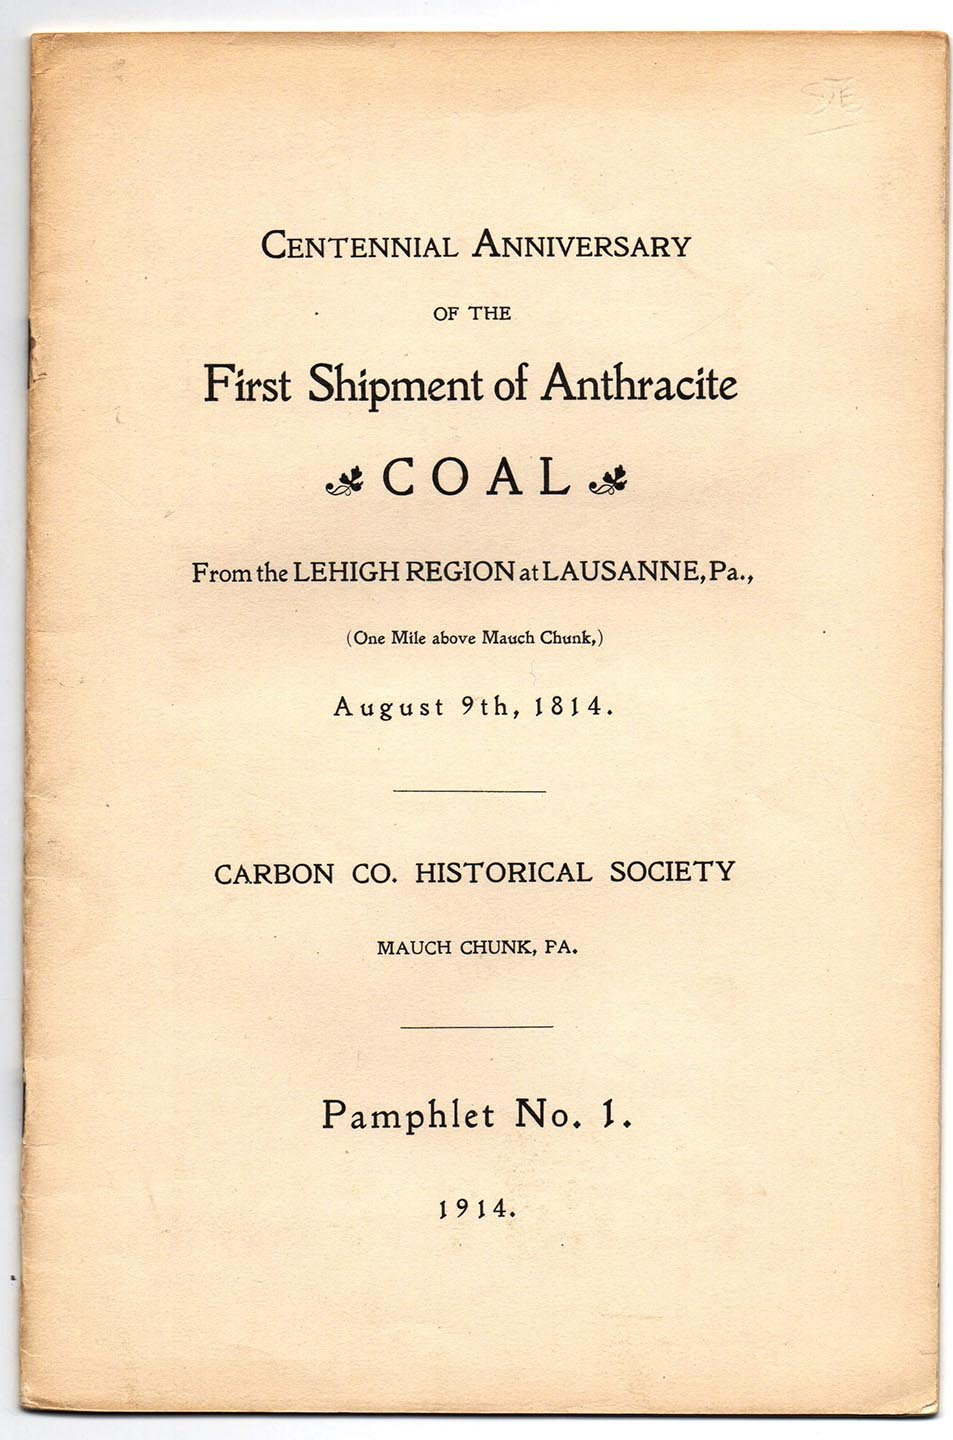 Centennial Anniversary of the First Shipment of Anthracite Coal